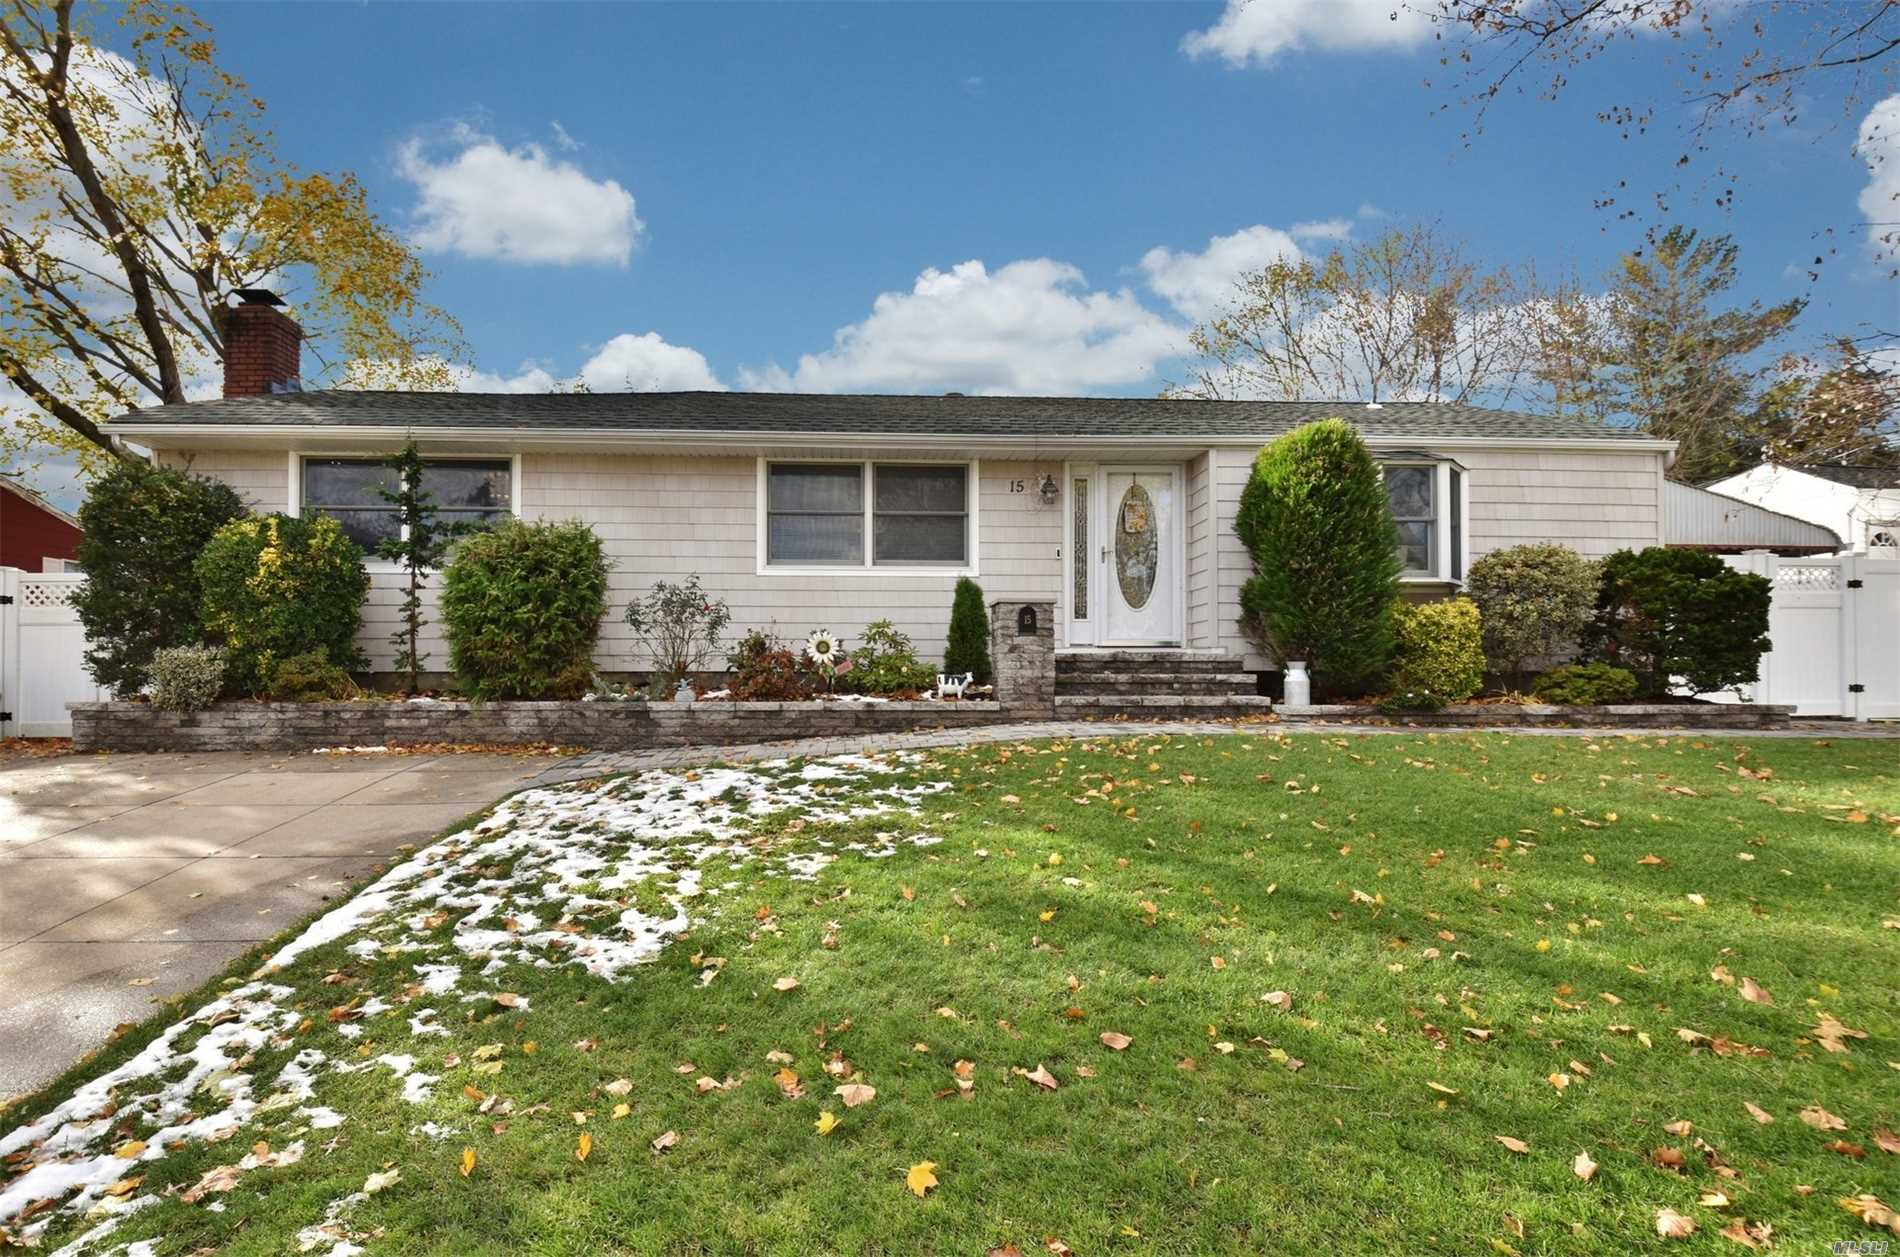 Beautiful Spacious Expanded Ranch in Commack SD! Large LR w/ Fireplace. Formal Dining room just off the eat-in-kitchen. Master bedroom w/ full bath. Office leads Out To A Gorgeous backyard w/ heated In-Ground Pool. Finished basement too! Updates Include: Cac(7Yrs), Andersens, Roof(5Yrs), Siding(5Yrs), Doors, Pool Liner And Pool Stairs (5Yrs), Pool Heater(3yrs), Paver walkway and front steps (3yrs), PVC gates and fence (3yrs), Refinished H/W, and Newly Painted w/ mouldings. Must See!!!